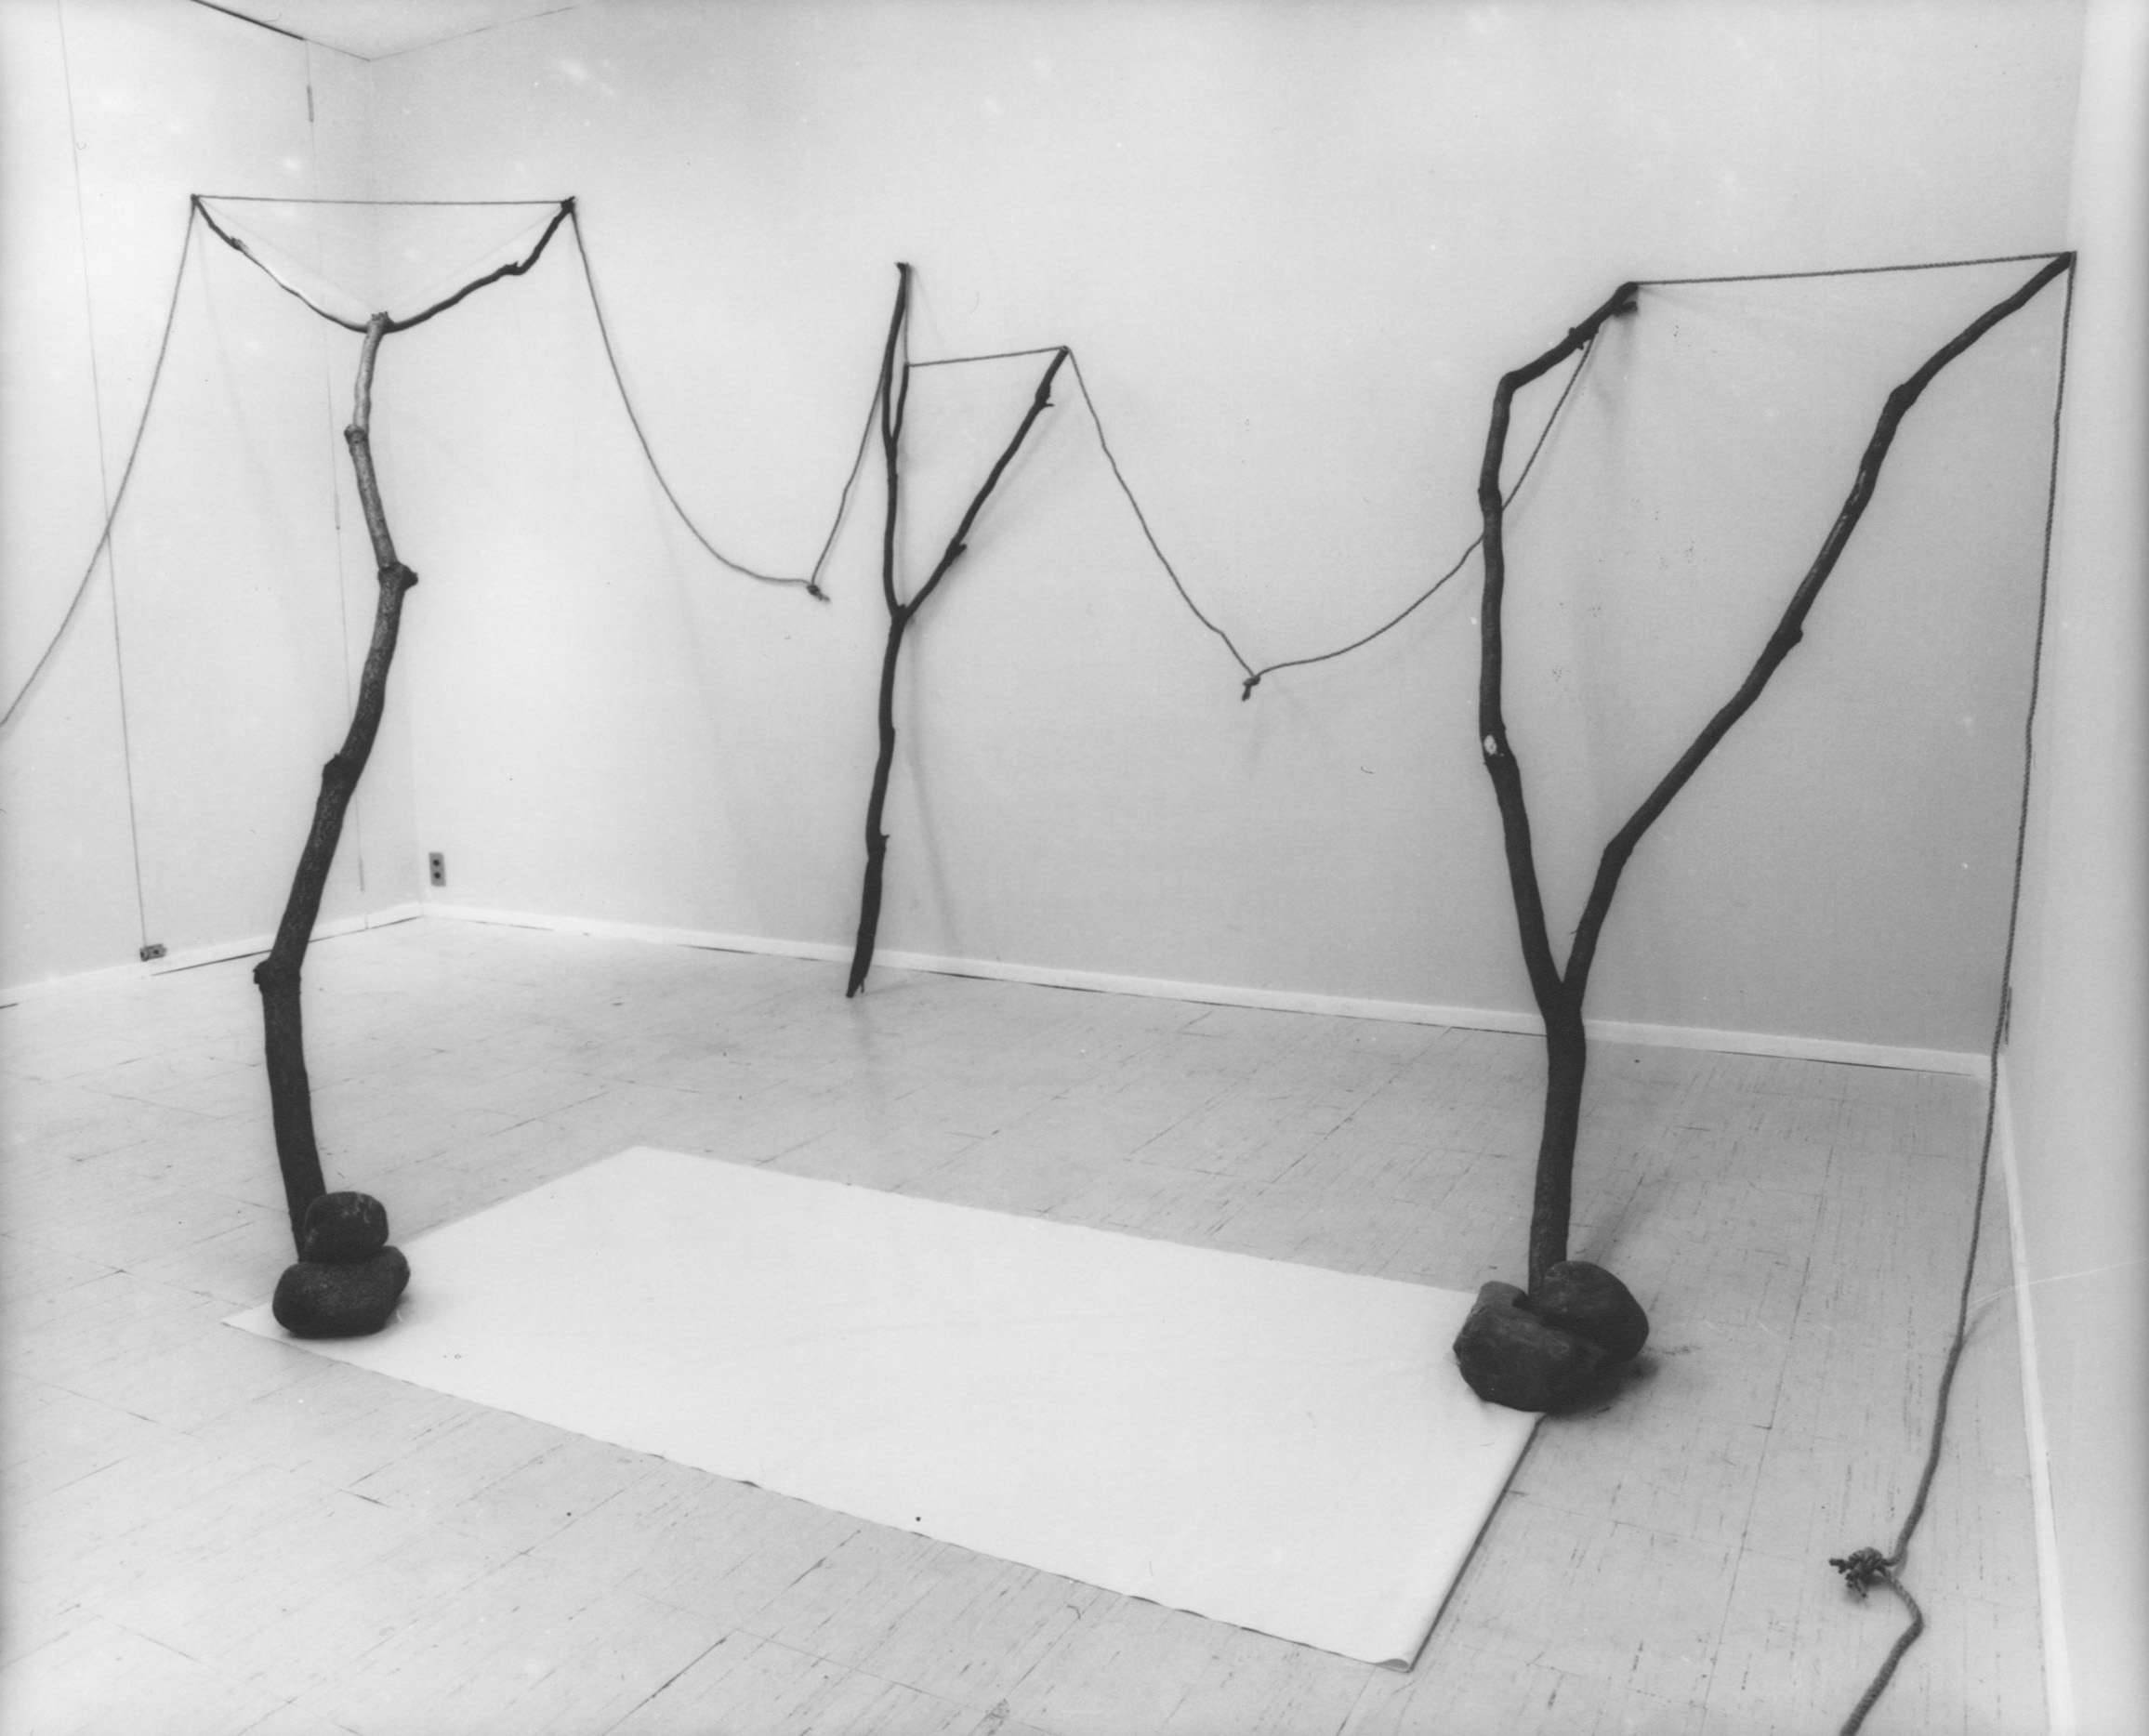 Continuous Existence , 1977 連界 ( Renkai ) Rope, branches, stones, paper Dimensions variable Installation view, Shin Tamura Gallery, Tokyo, 1977 Photo: Shigeo Anzaï